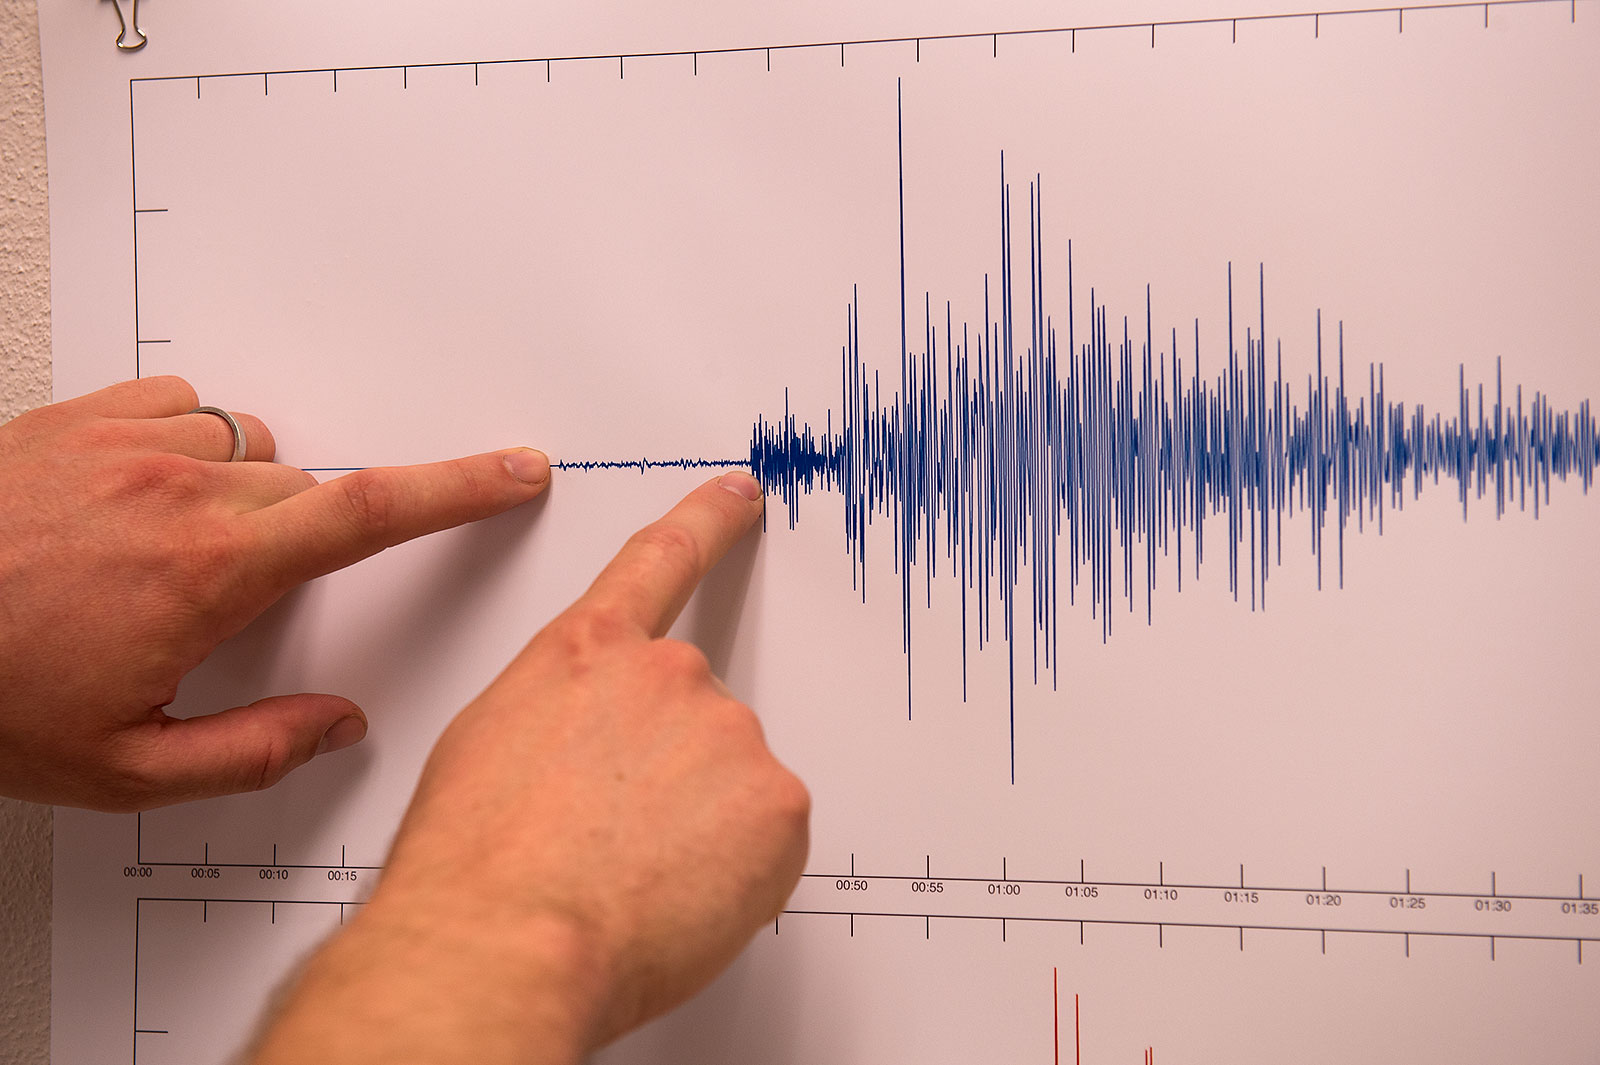 readings from seismometer